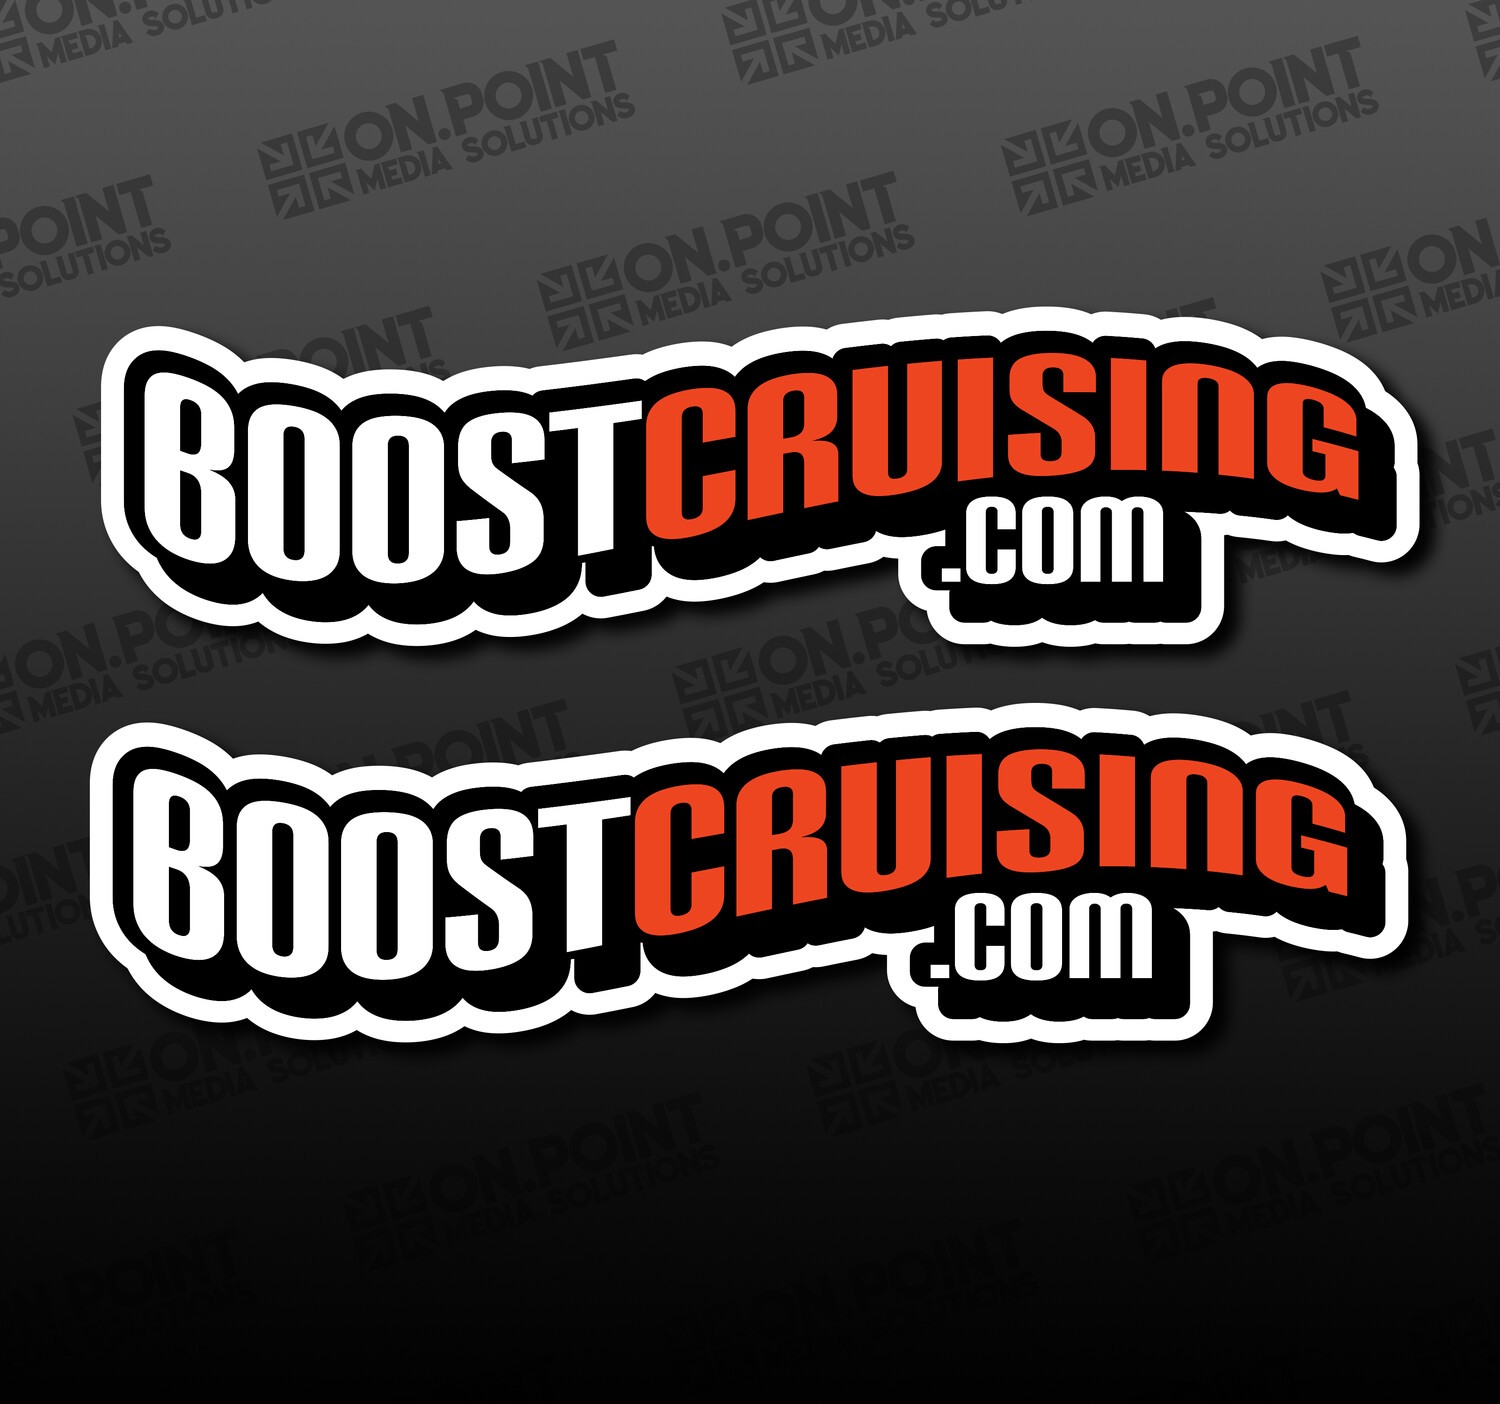 The Boostcruising OG Sticker Twin Pack